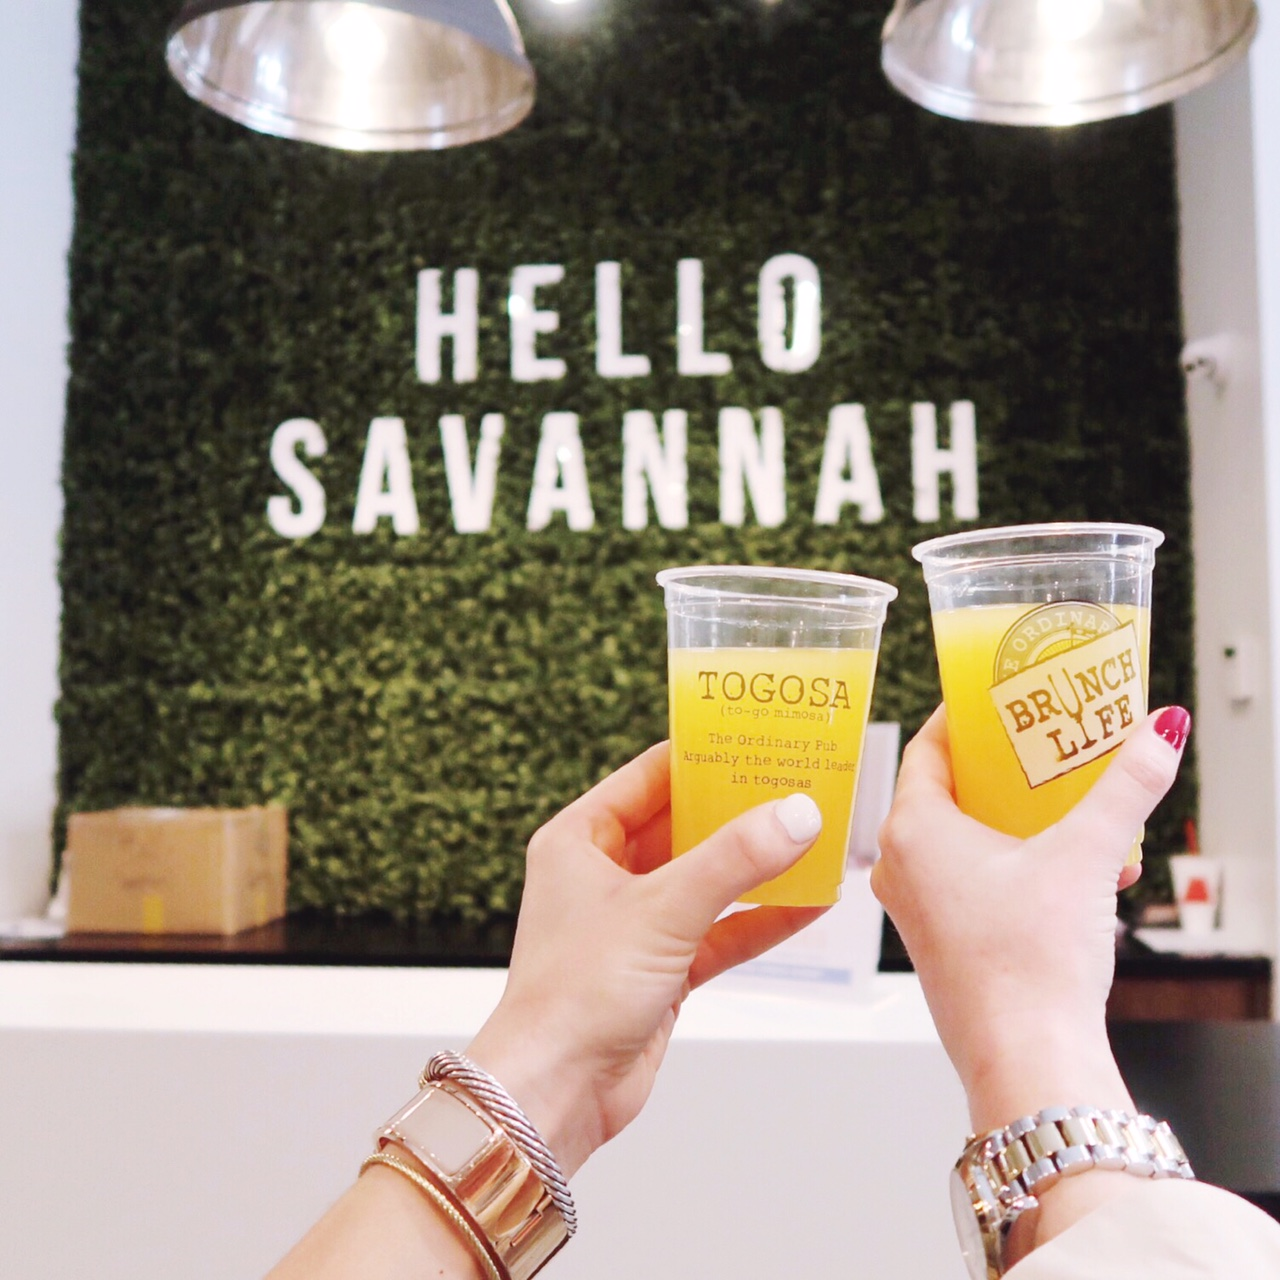 Savannah, GA City Guide // What to do in Savannah, GA // where to eat, drink, shop in Savannah